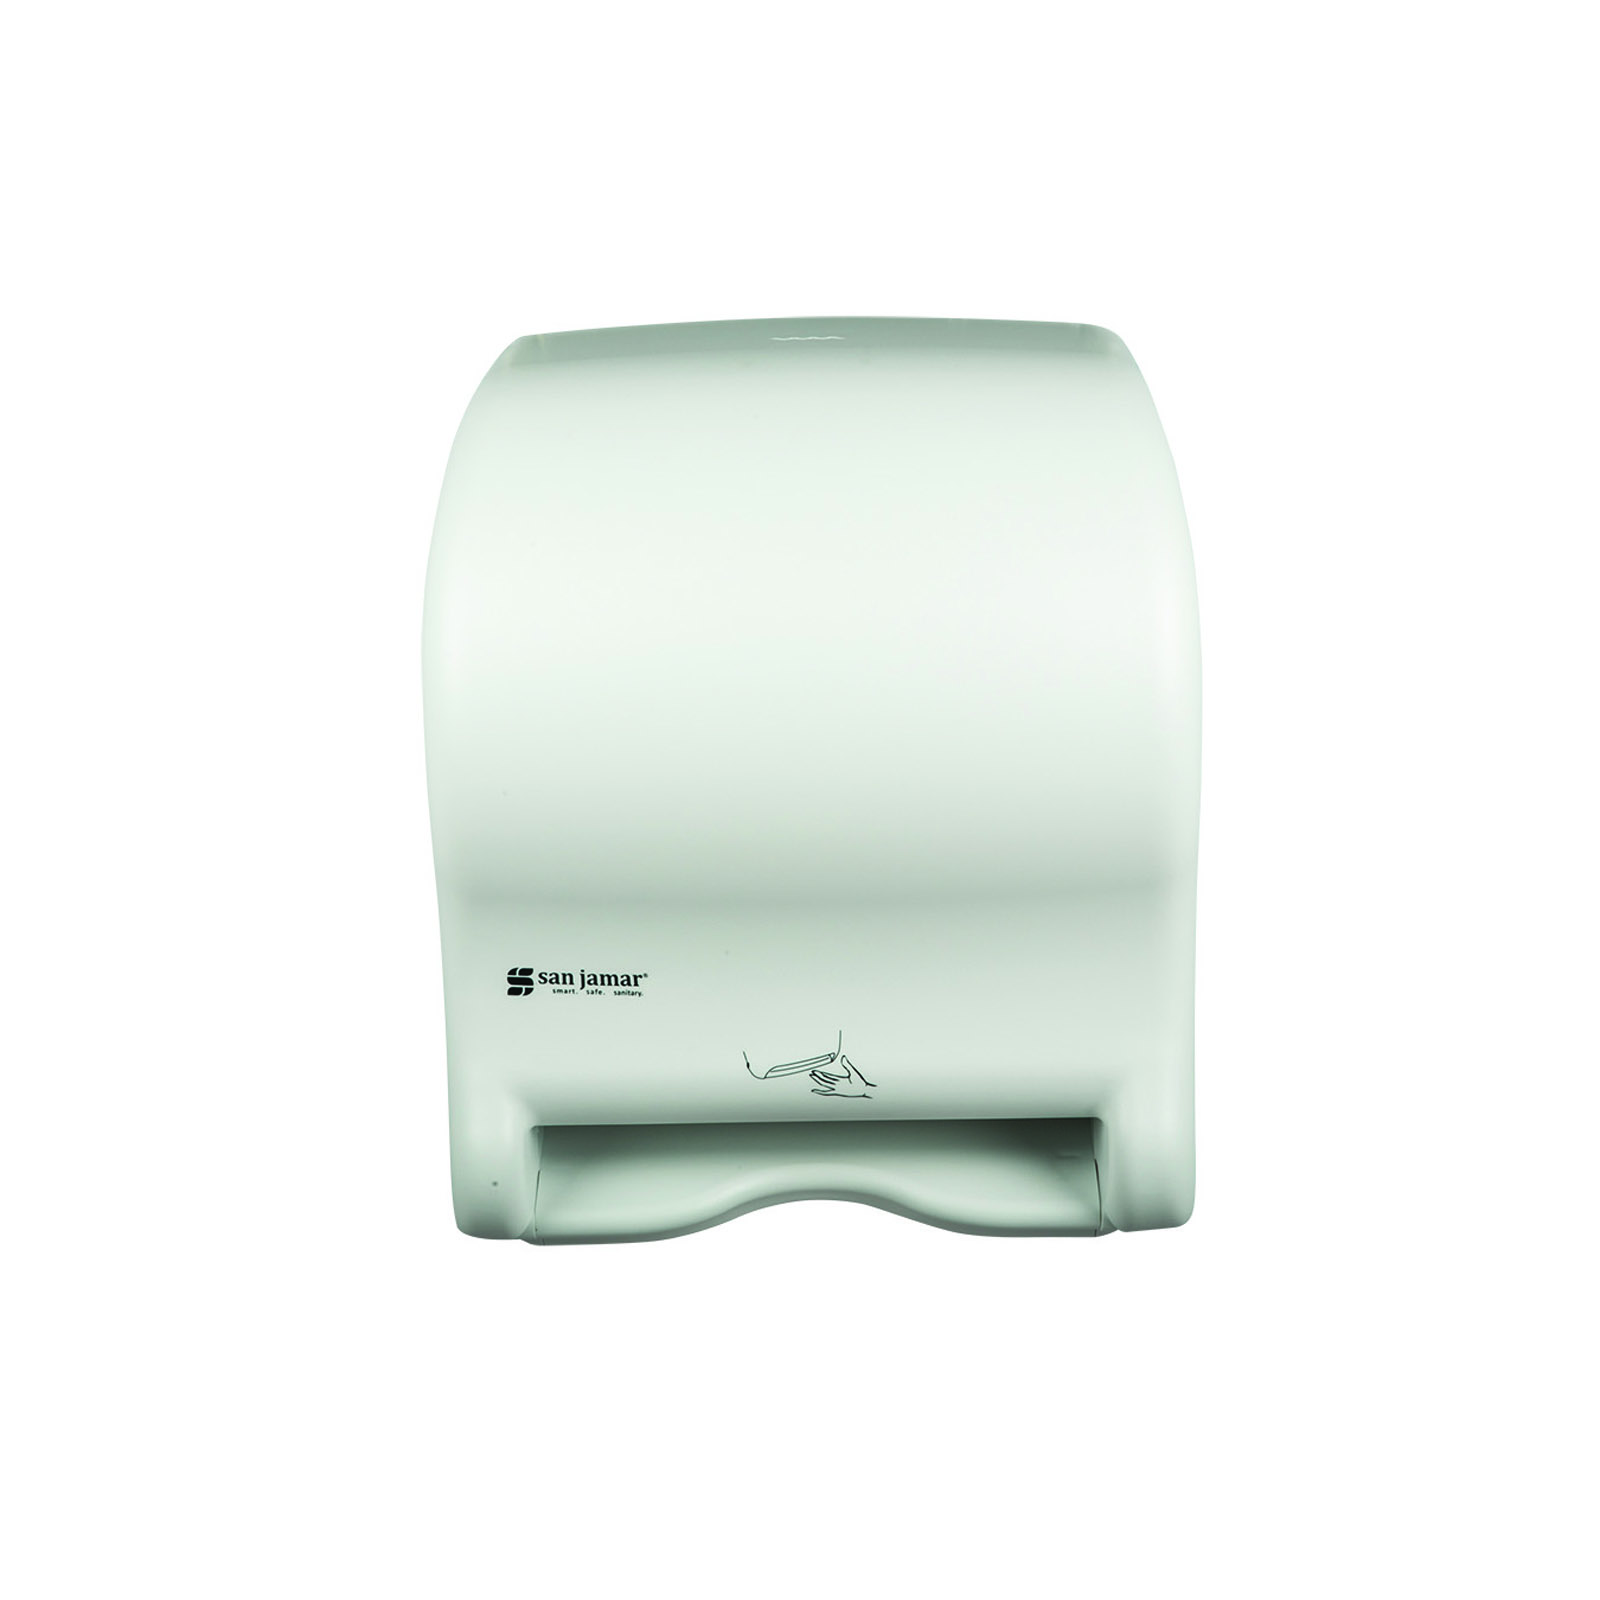 San Jamar T8400WH paper towel dispenser